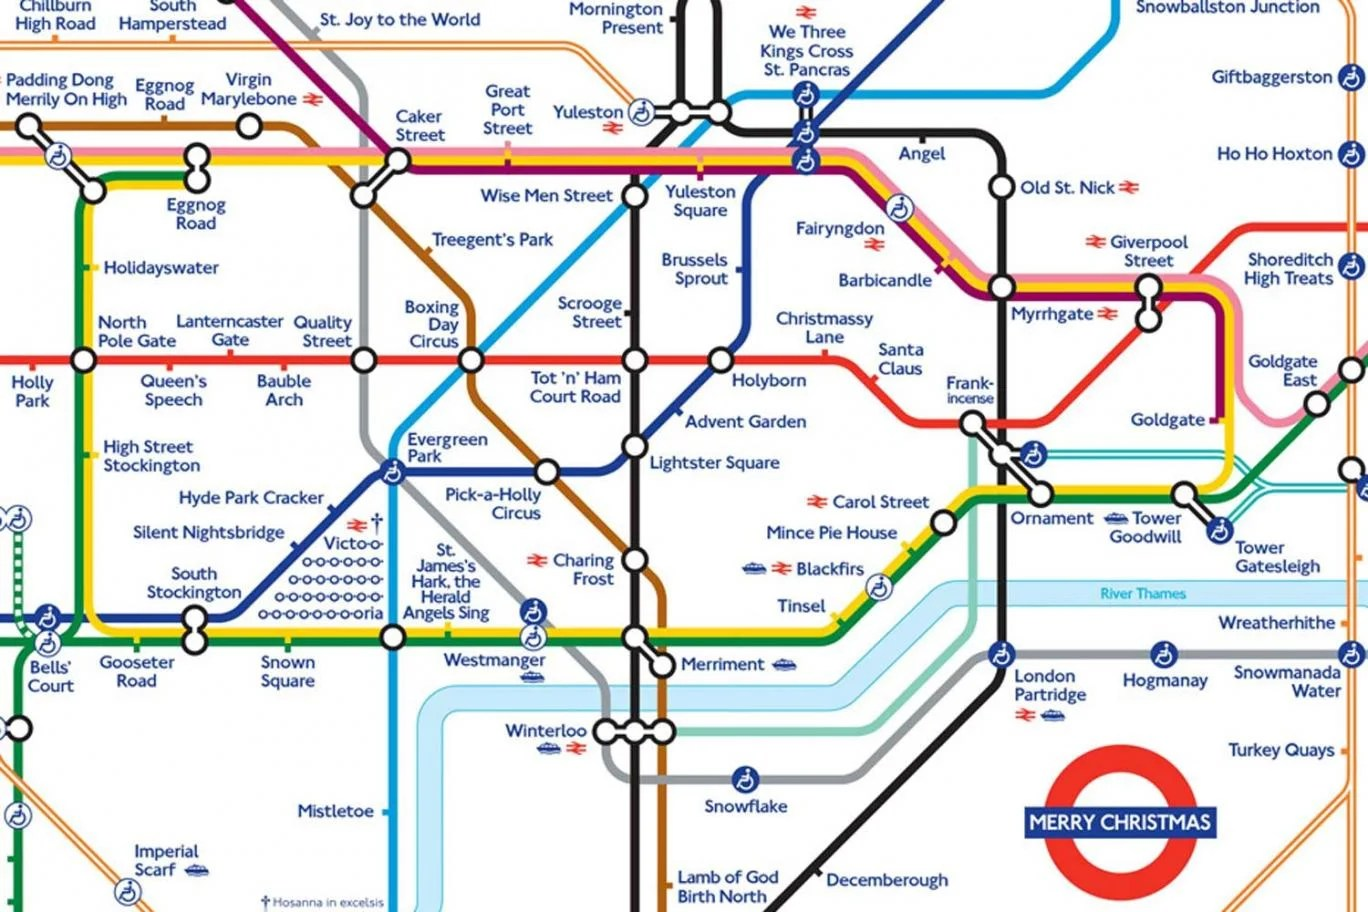 Vauxhall Partners List Of Companies All About London Londoner Creates Festive Tube Map To